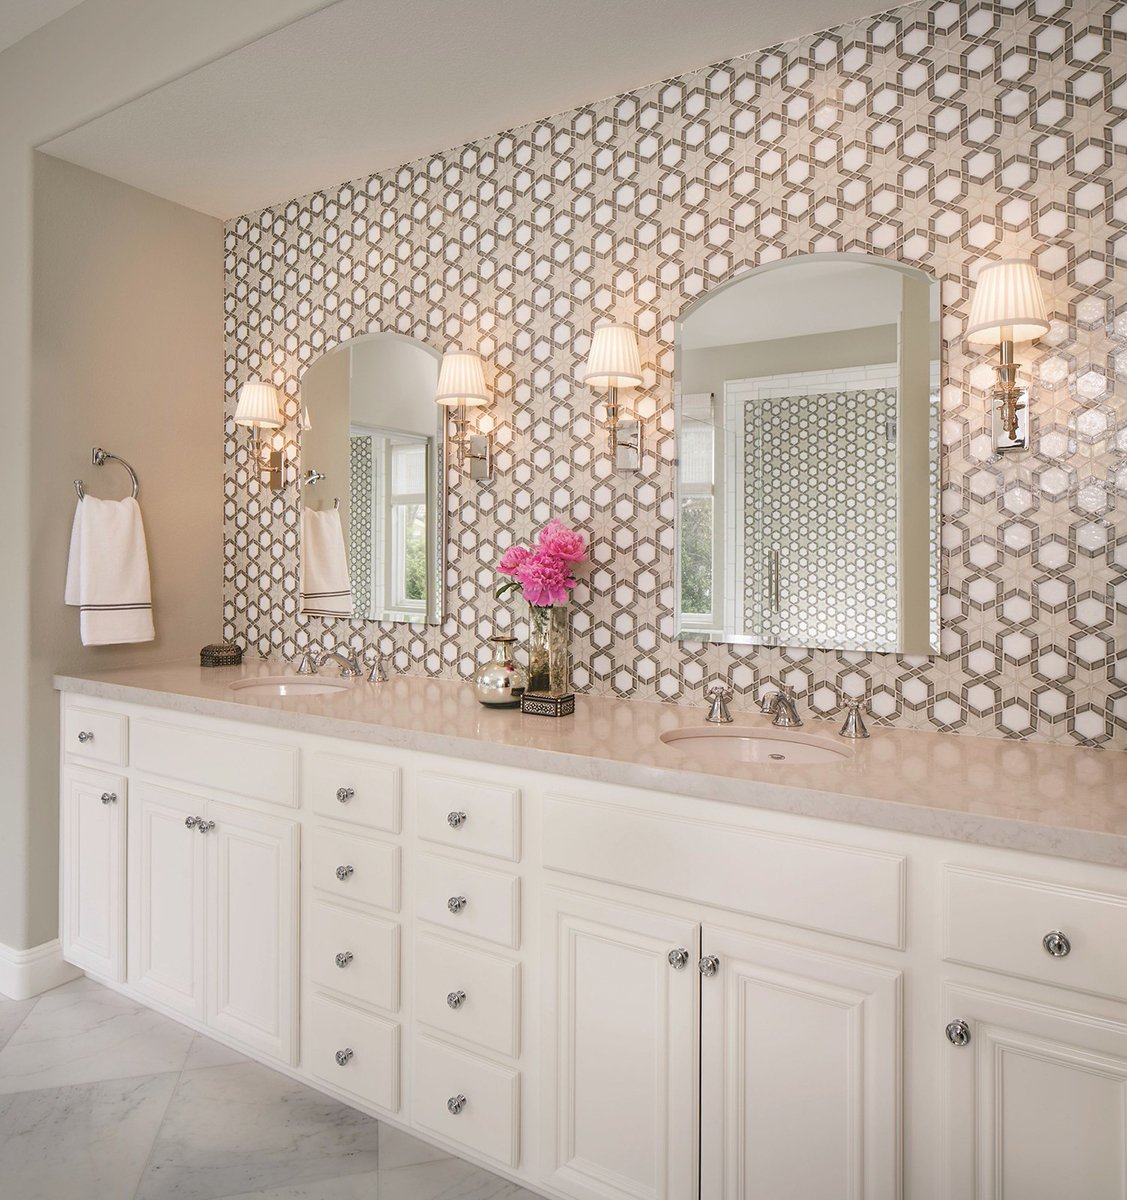 Bathroom Tile Store Rochester NY   Concept II Tile Store